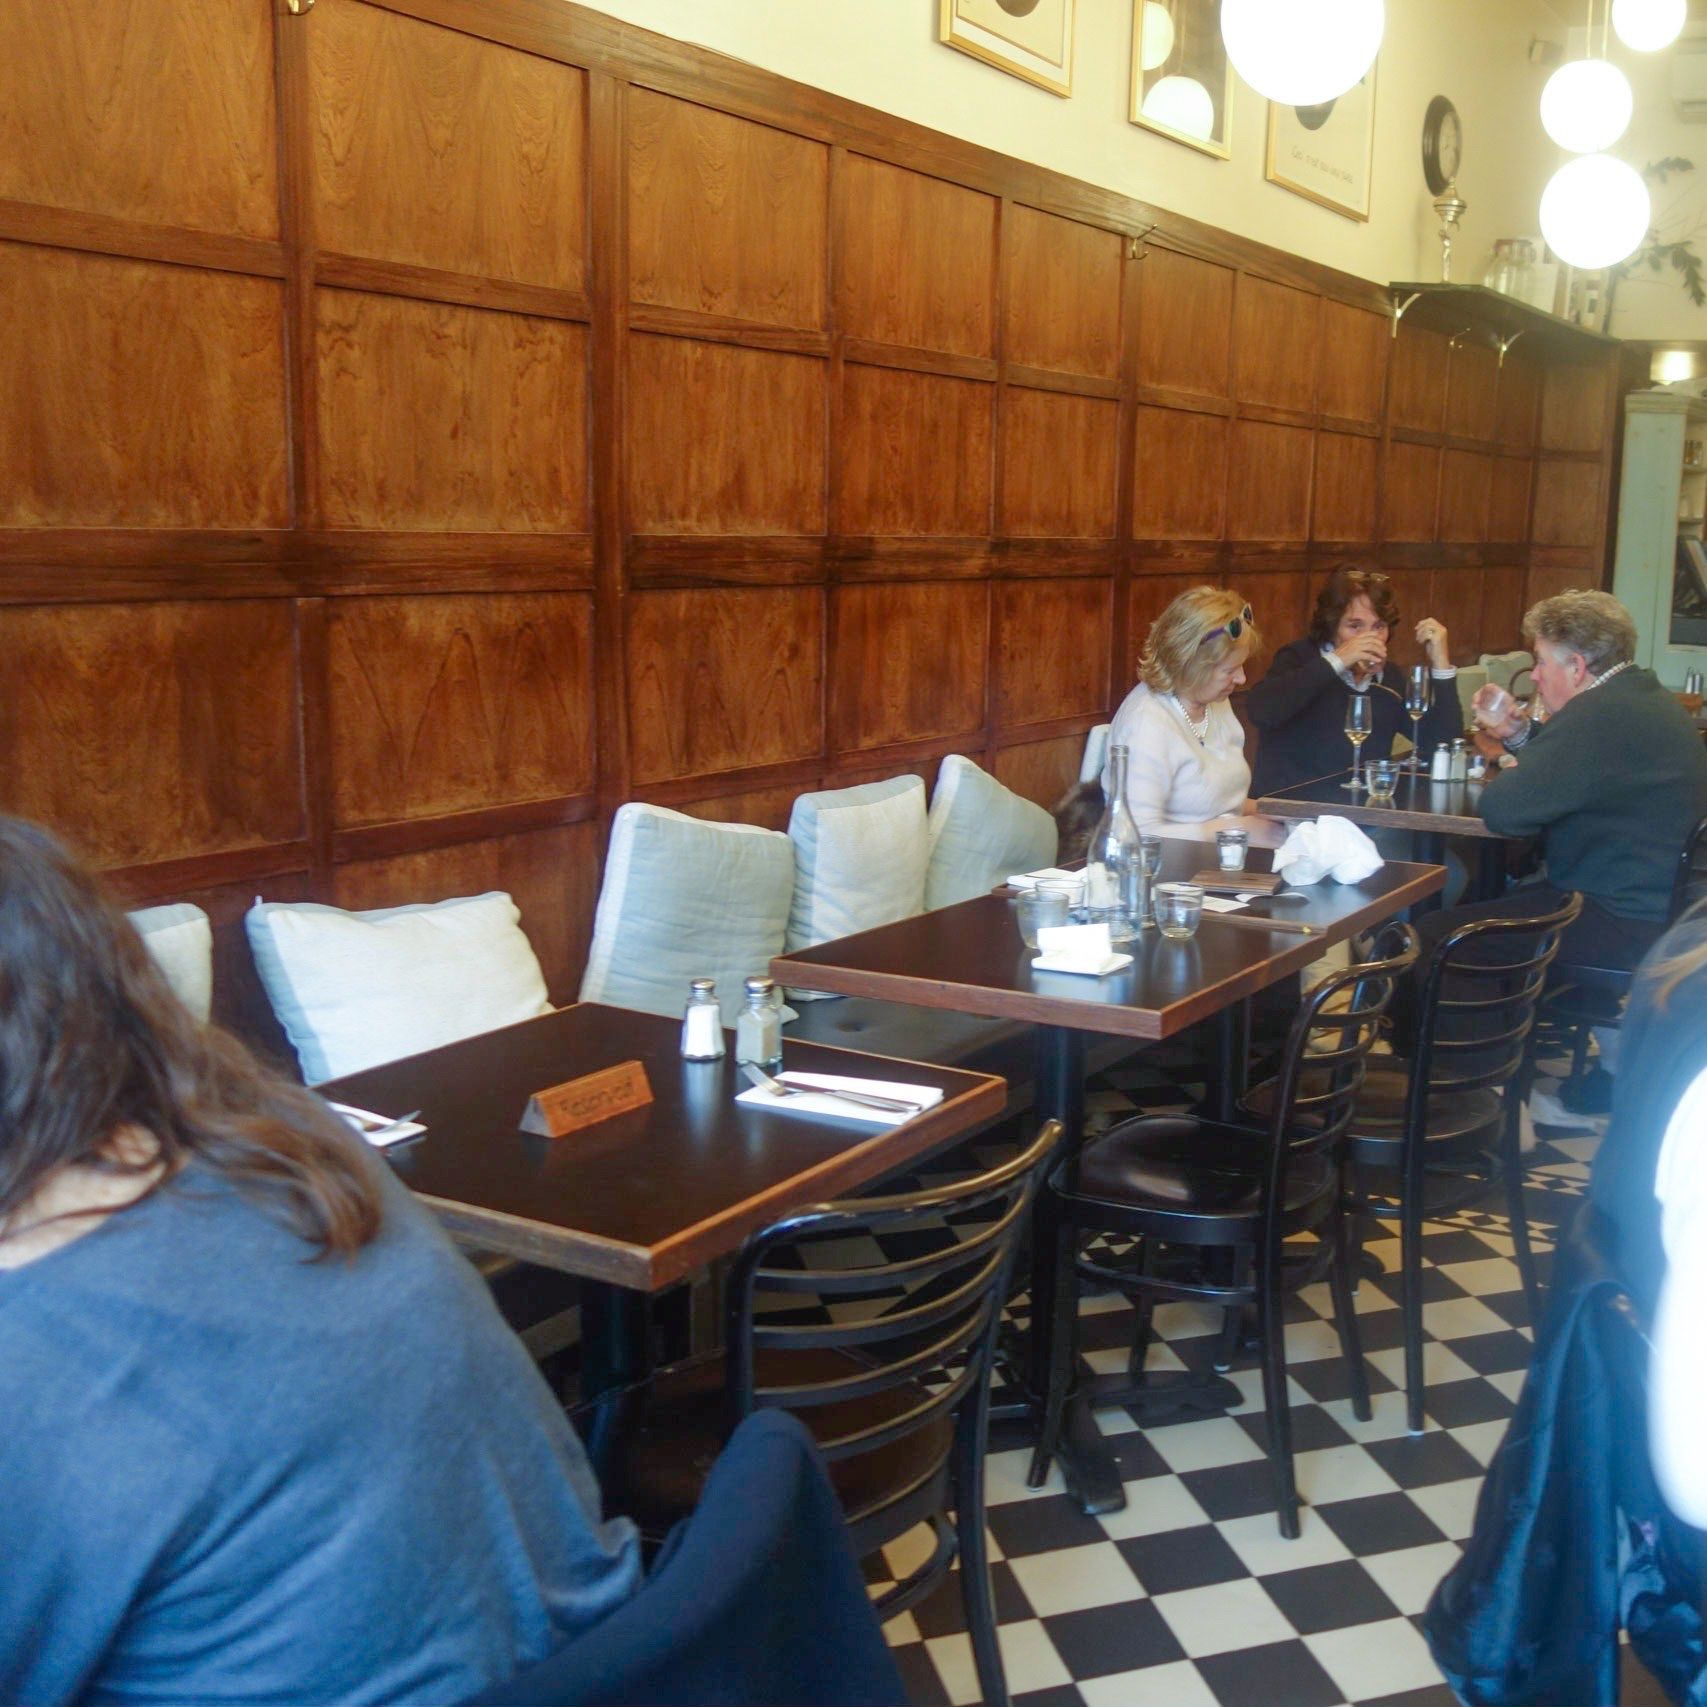 Goode and Wright, Portobello Road. A great French/British bistro that does fantastic breakfast and lunch.